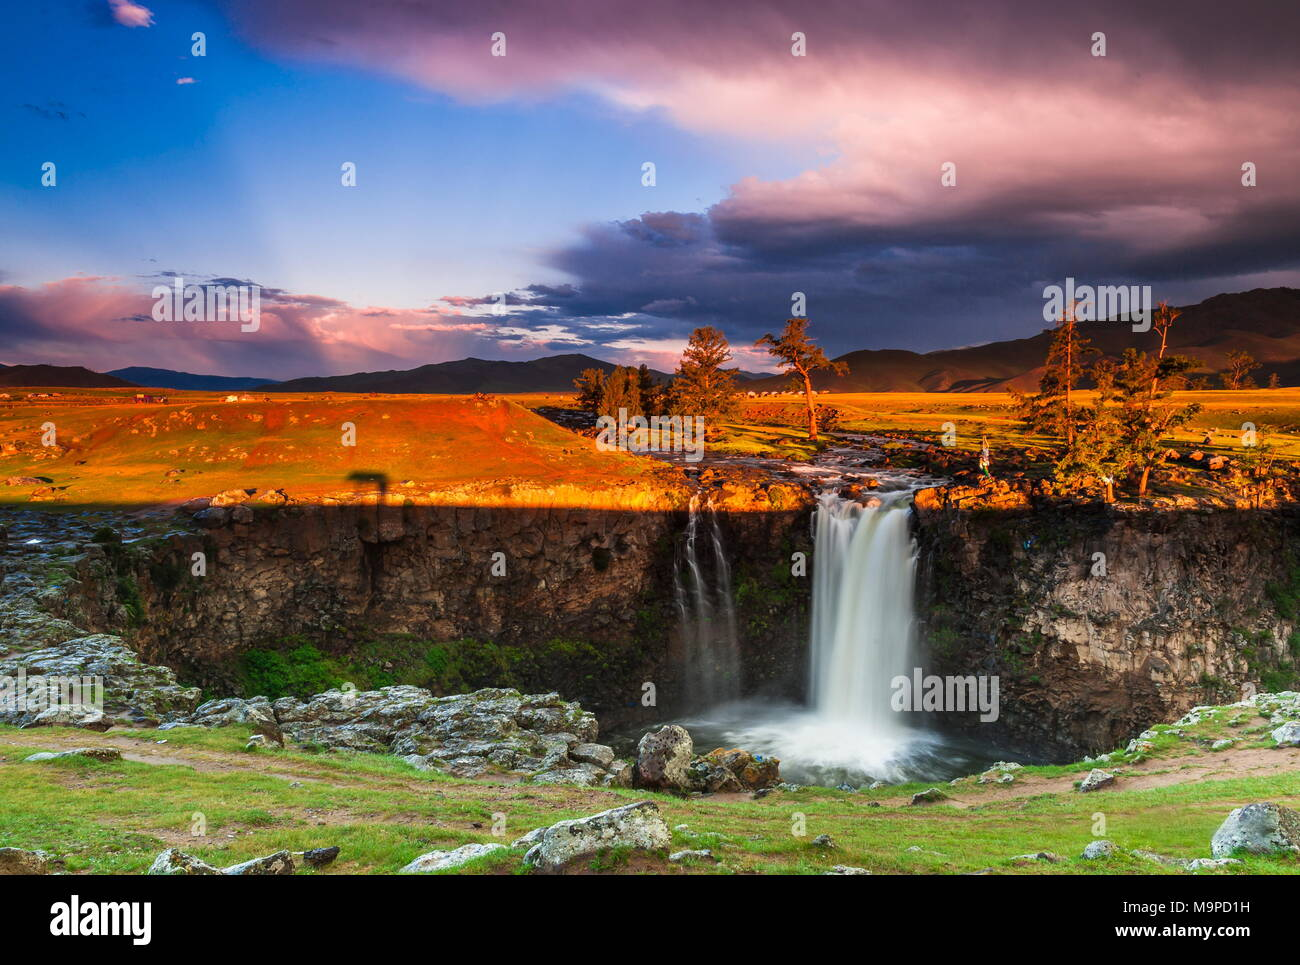 Orkhon waterfalls in dramatic sunlight, Mongolia Stock Photo